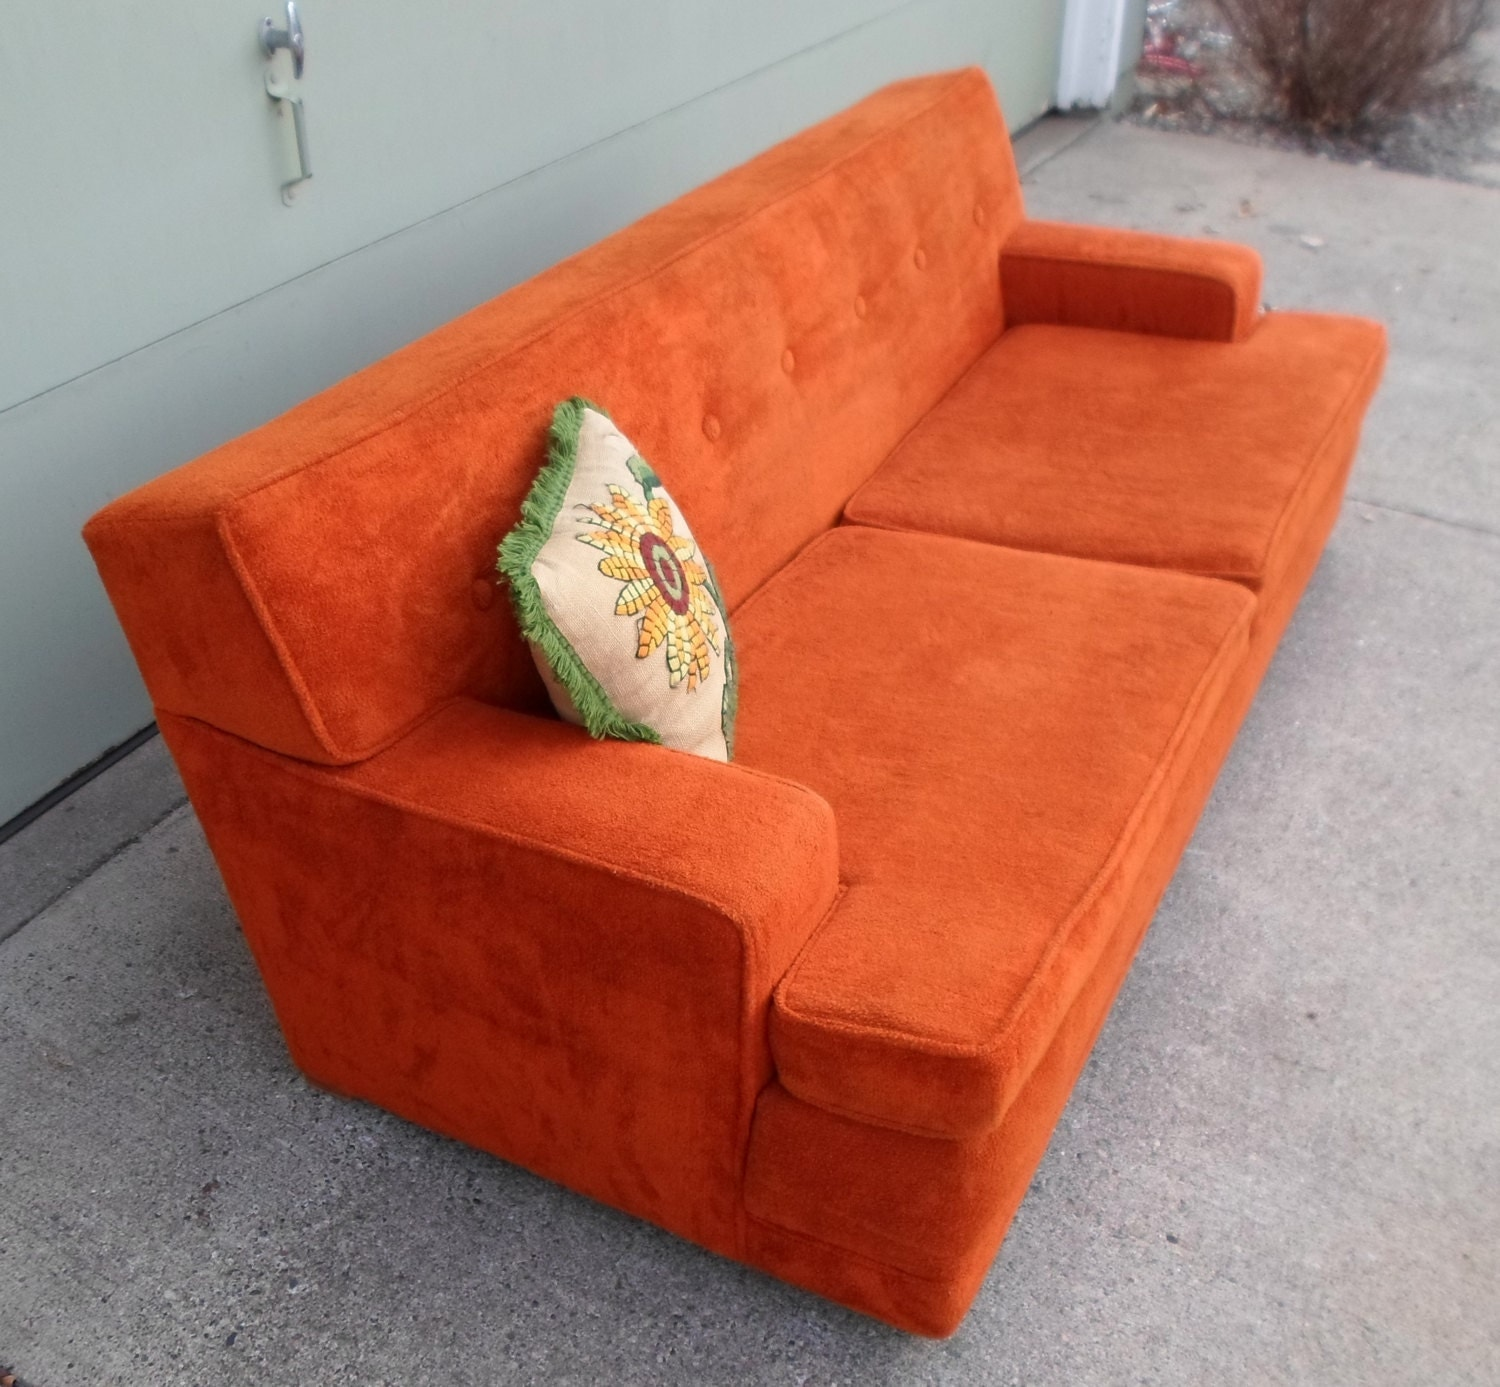 Vintage 1960S Orange Flexsteel Sofa Couch by  : ilfullxfull456861642t493 from www.etsy.com size 1500 x 1387 jpeg 383kB